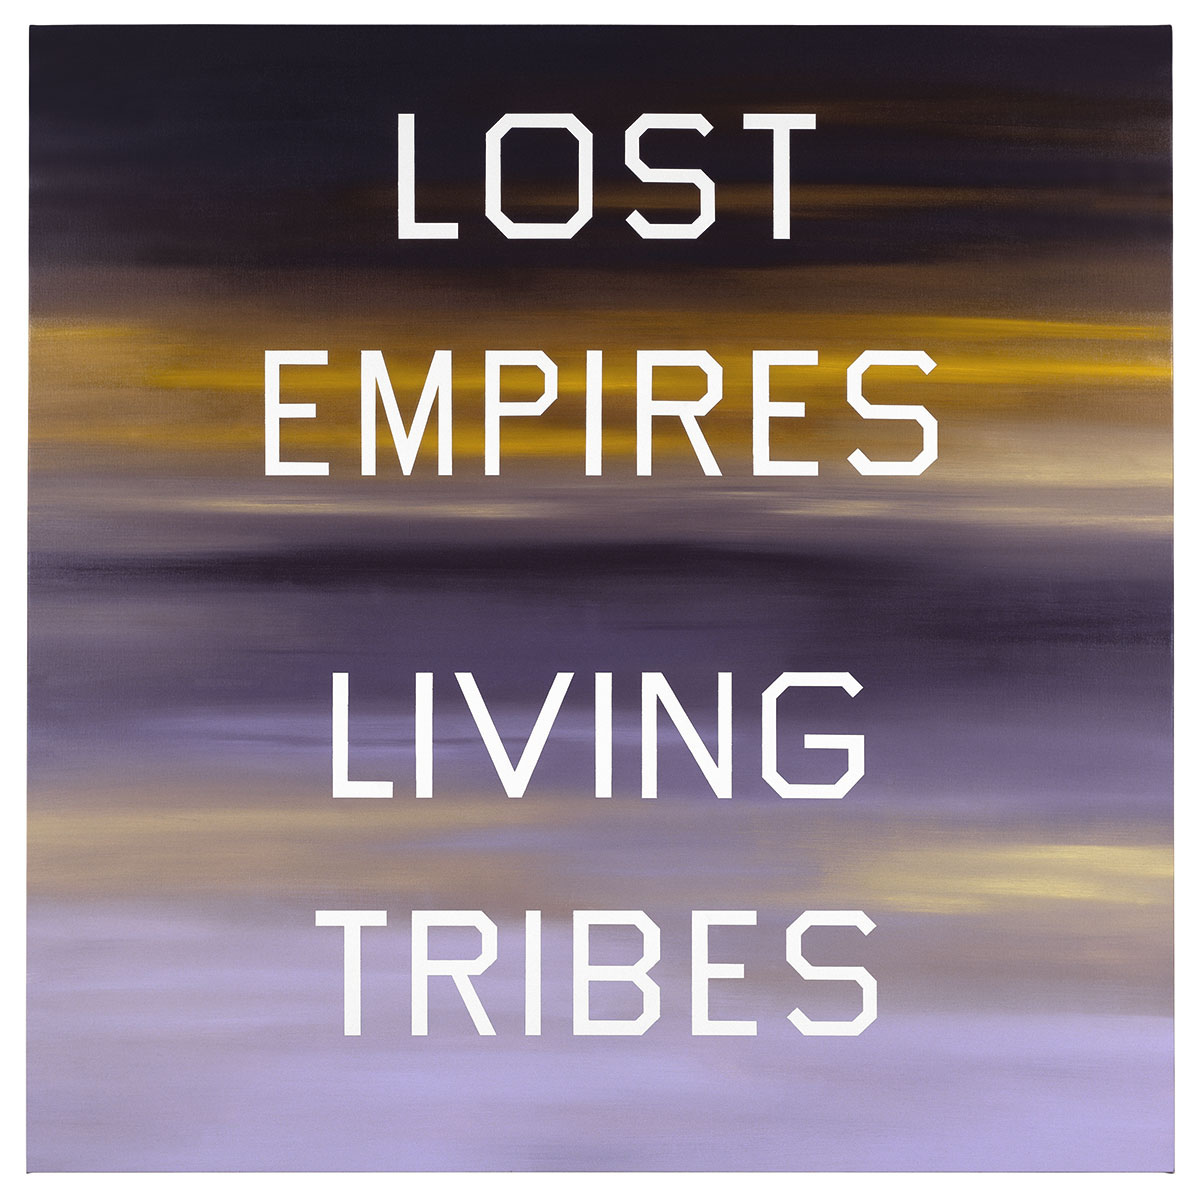 Ed Ruscha, Lost Empires, Living Tribes, 1984, Oil on canvas, 64 x 64 inches. The Marciano Collection, Los Angeles. © Ed Ruscha